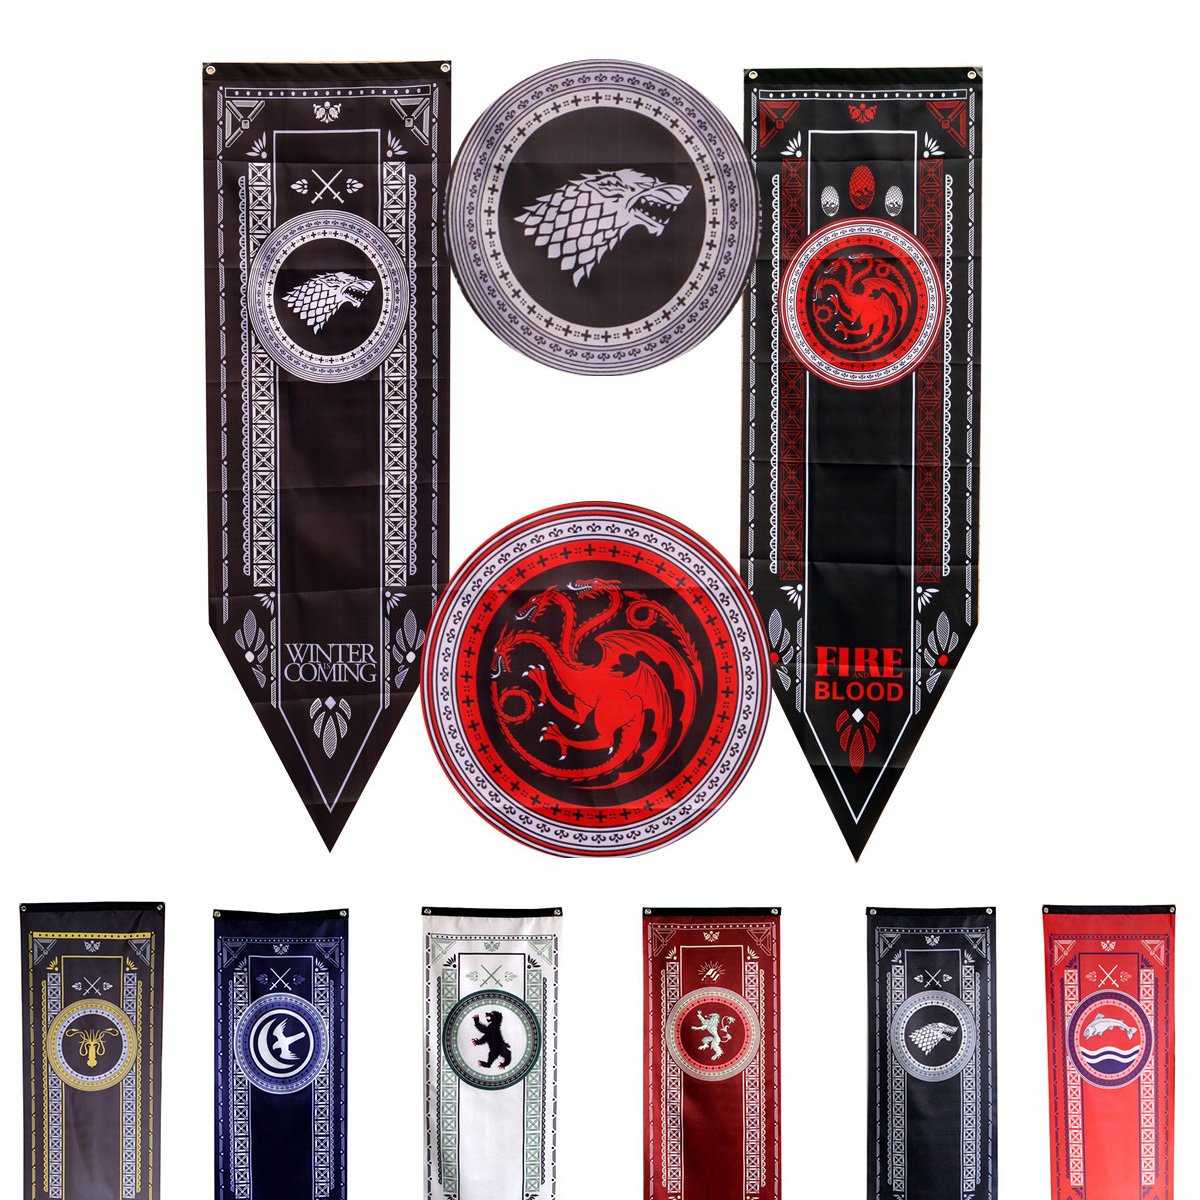 Game Of Thrones Banner Targaryen Stark Lannister Baratheon Bolton Nights Watch Flag new Home Decor room Party flags freeshipping-in Flags, Banners & Accessories from Home & Garden on Aliexpress.com | Alibaba Group